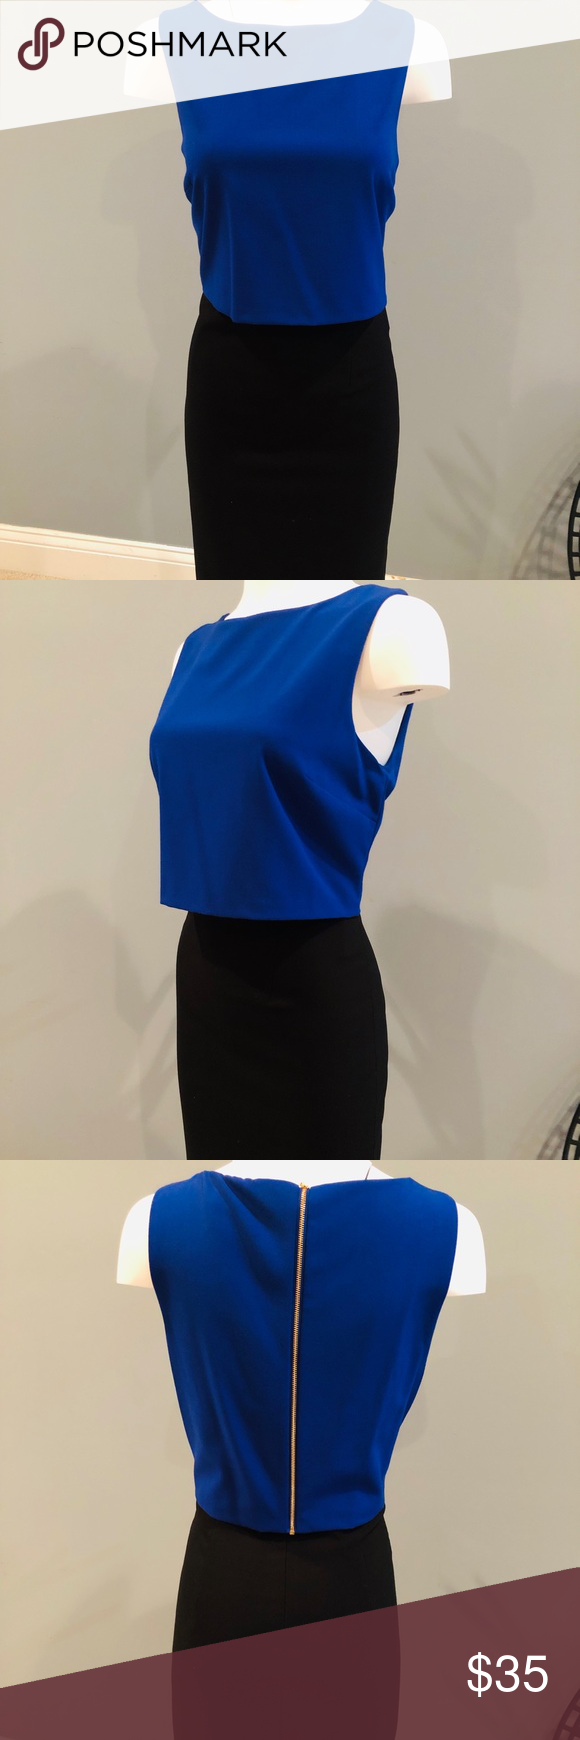 fa983d71413 Ivanka Trump Brand New Navy and Blue Dress Fun dress with zipper in the  back. Black pencil skirt with blue shell top. This is a one piece item.